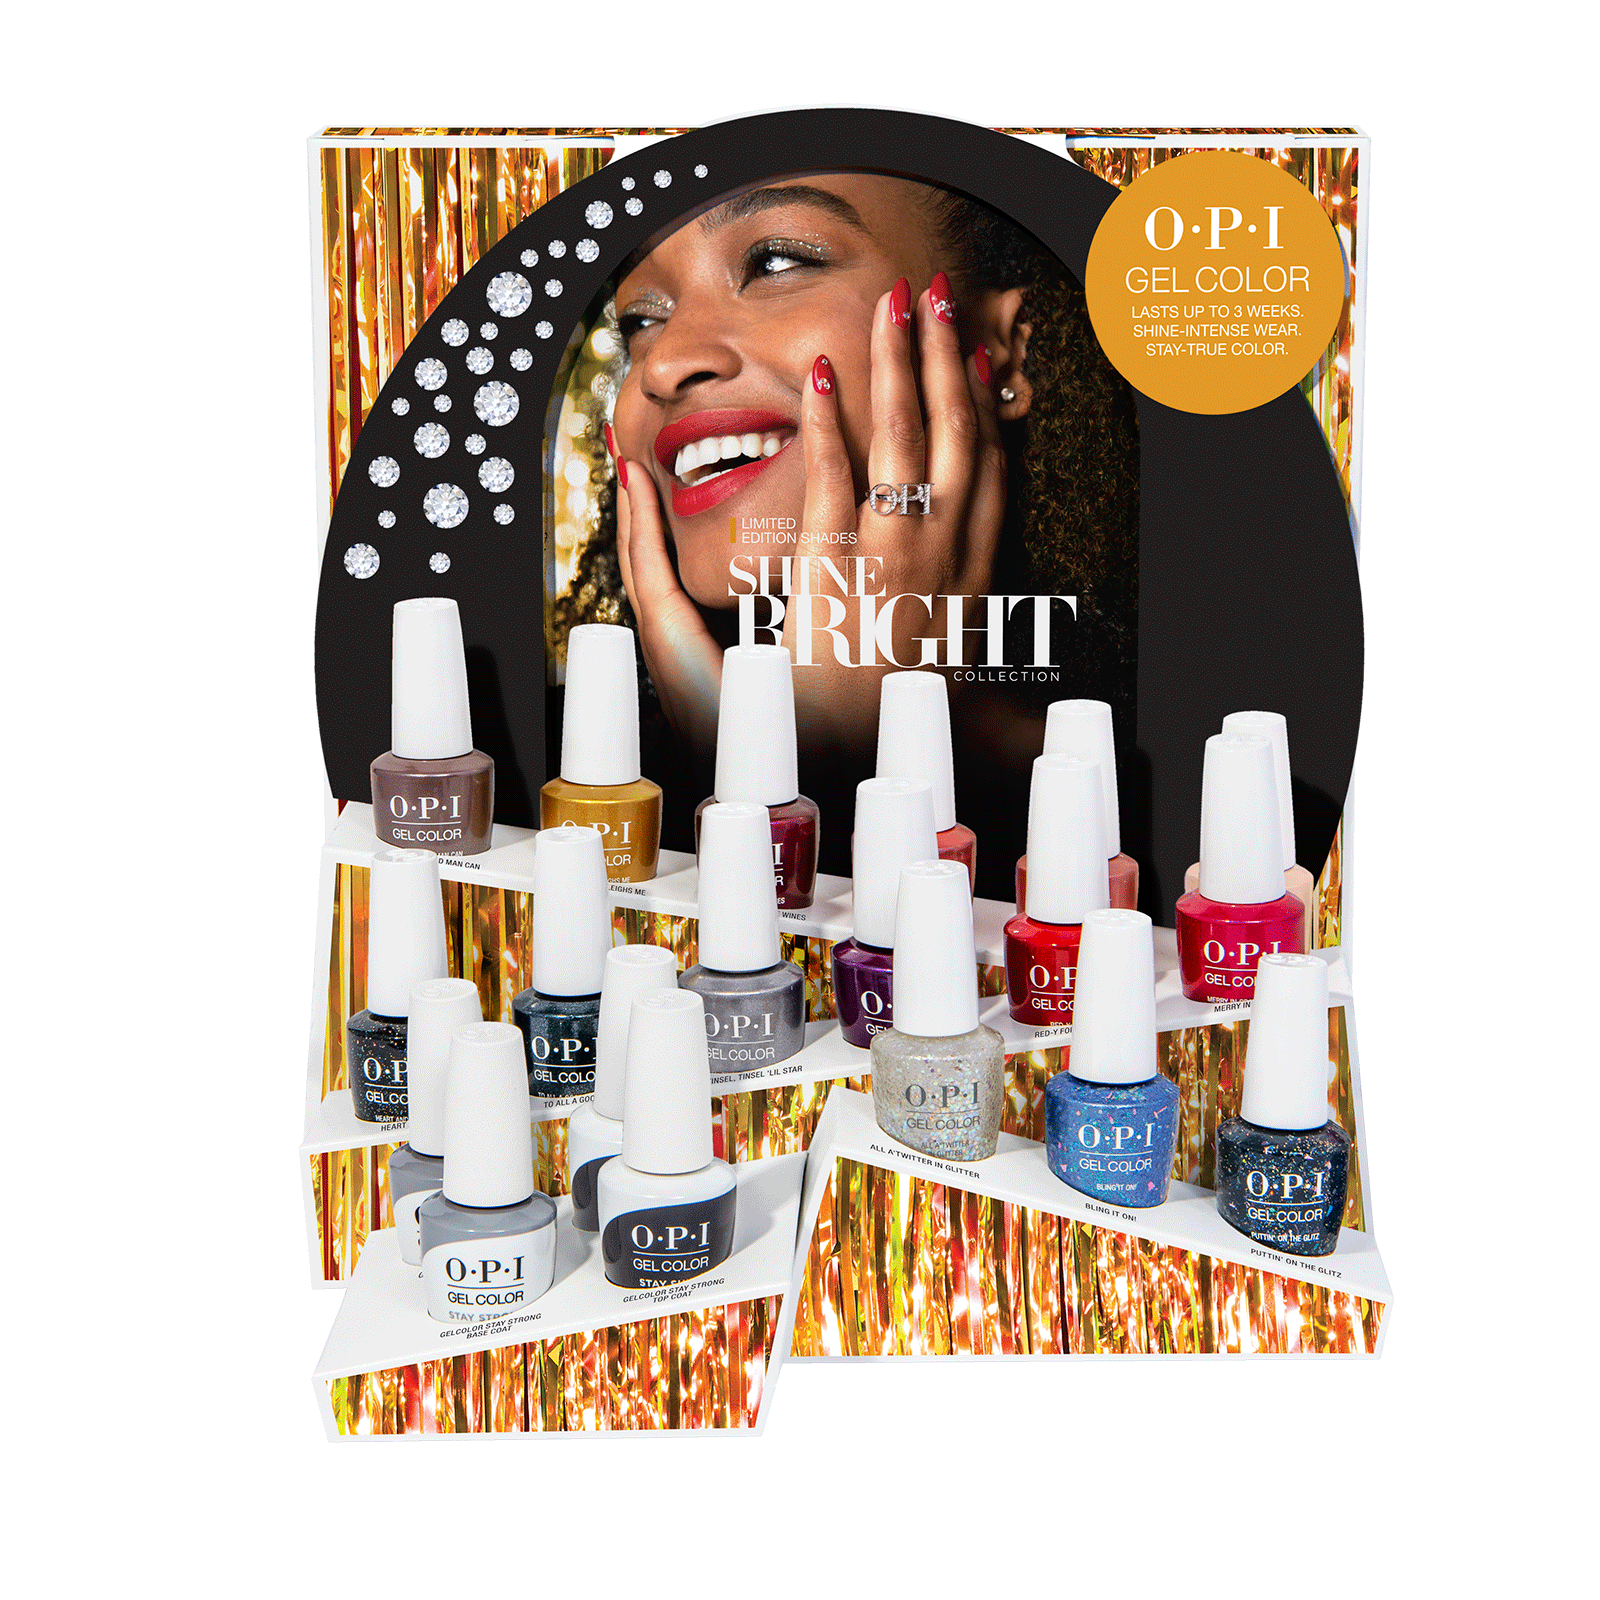 Shine Bright Gel Color 19-Piece Display